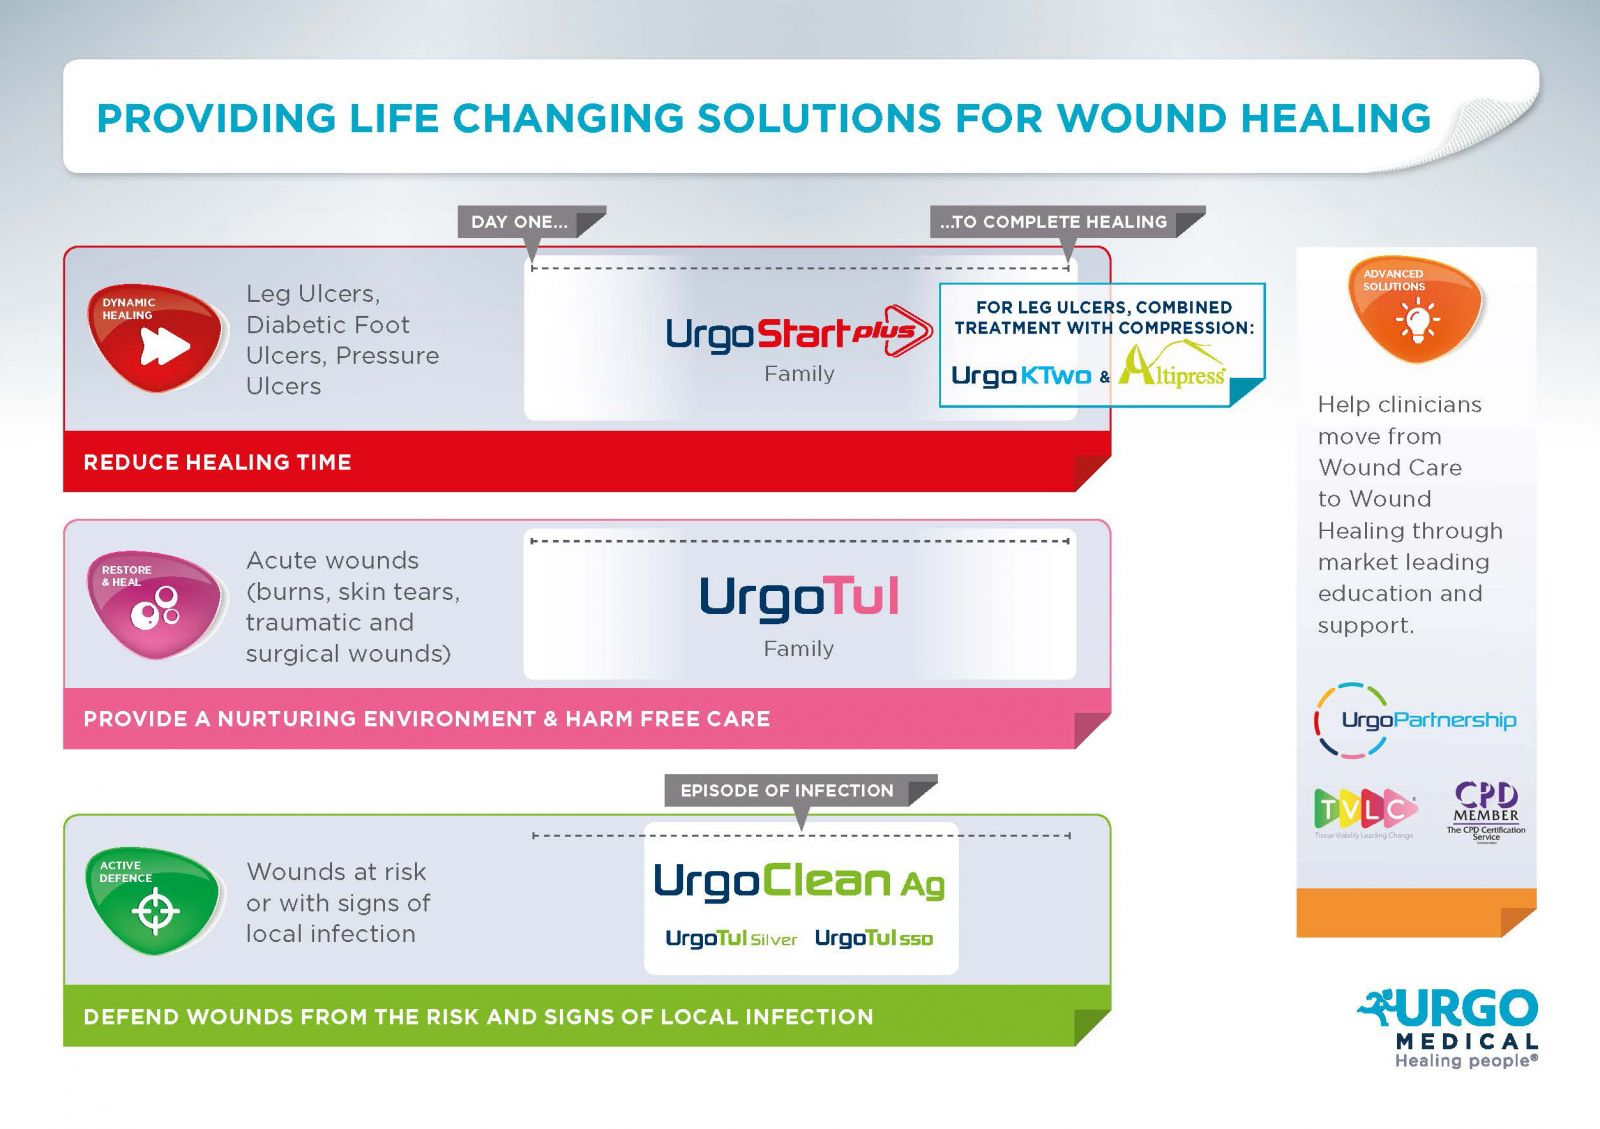 URGO-proving-life-changing-solutions-for-wound-healing